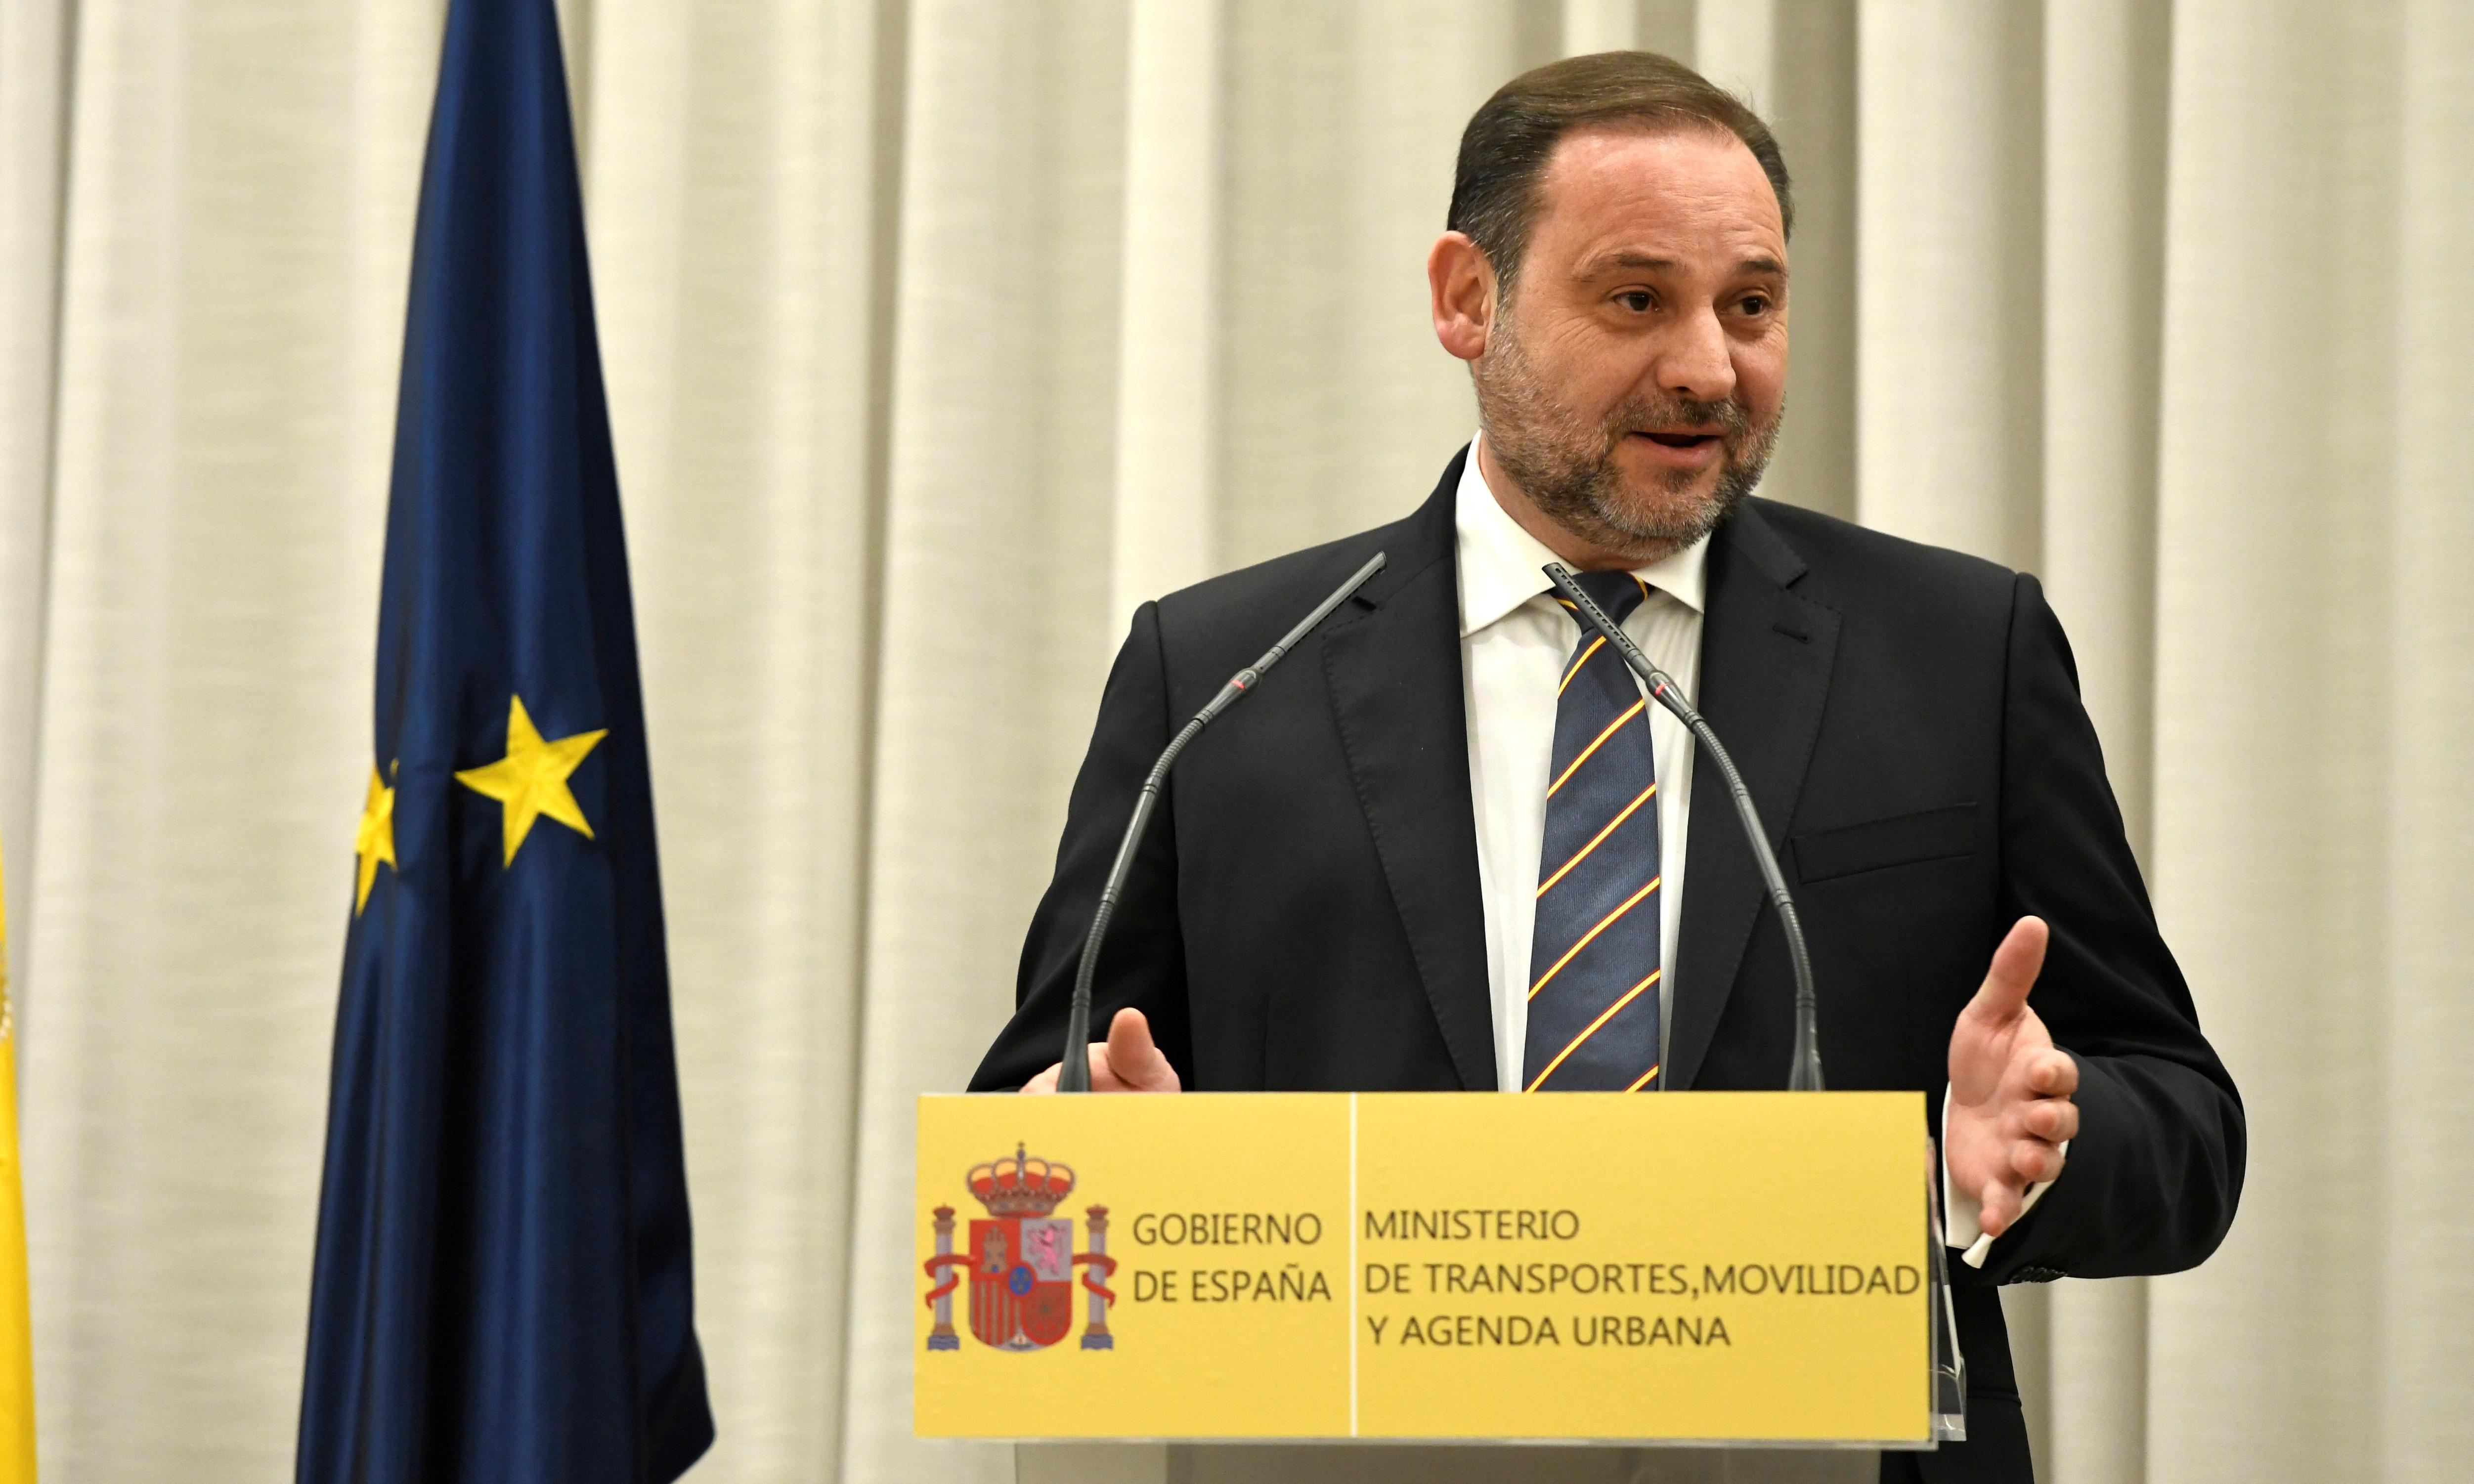 Airport meeting lands Spanish minister in Venezuela controversy